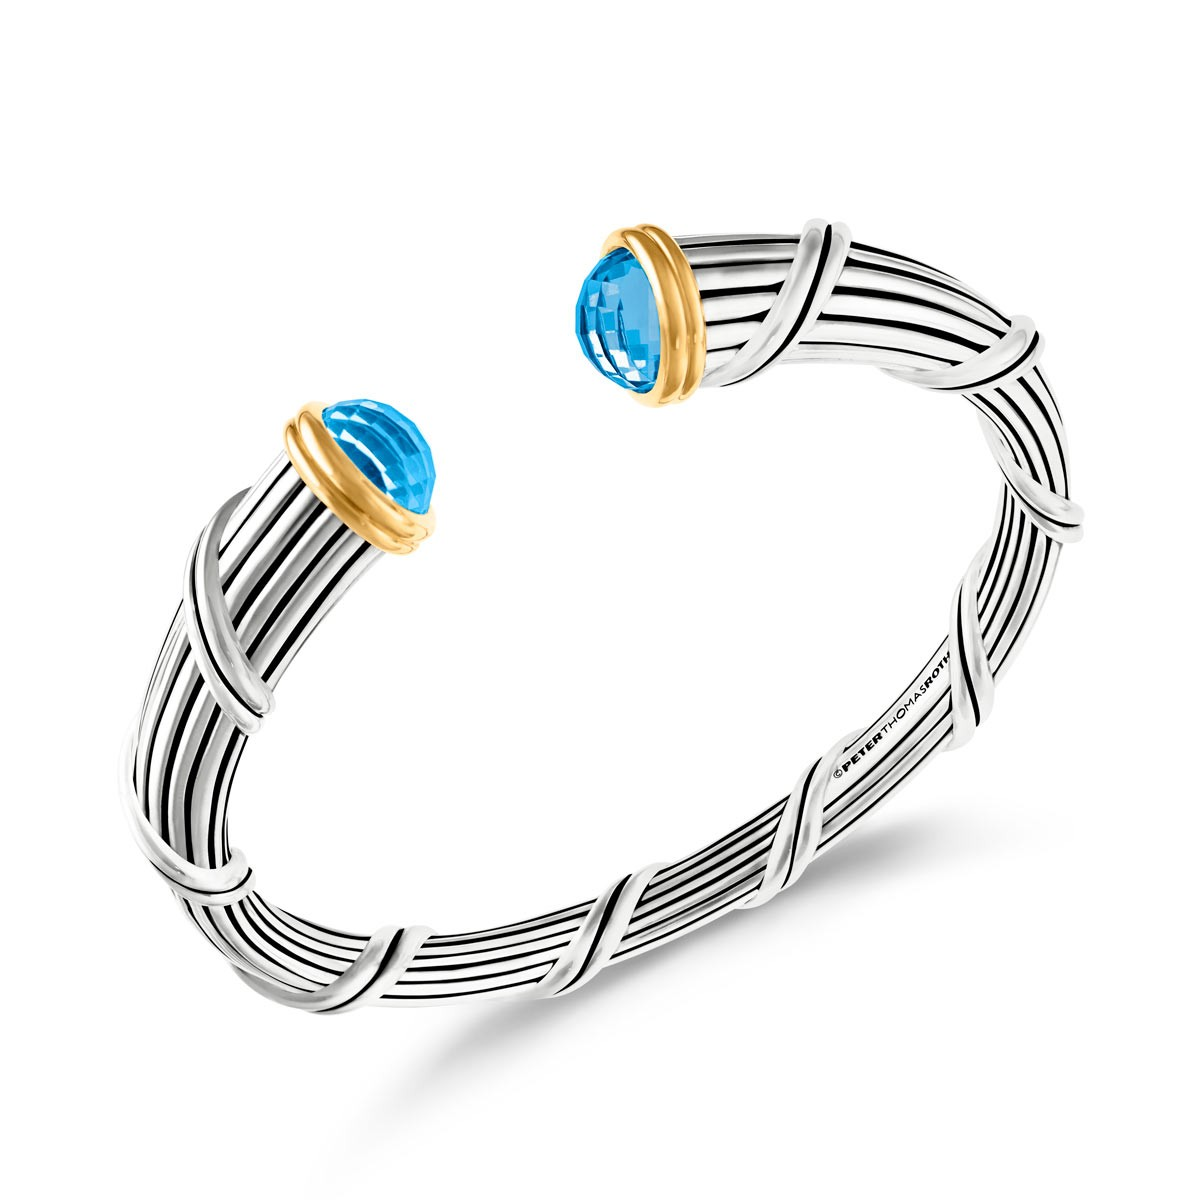 Fantasies Blue Topaz Tapered Cuff in two tone sterling silver